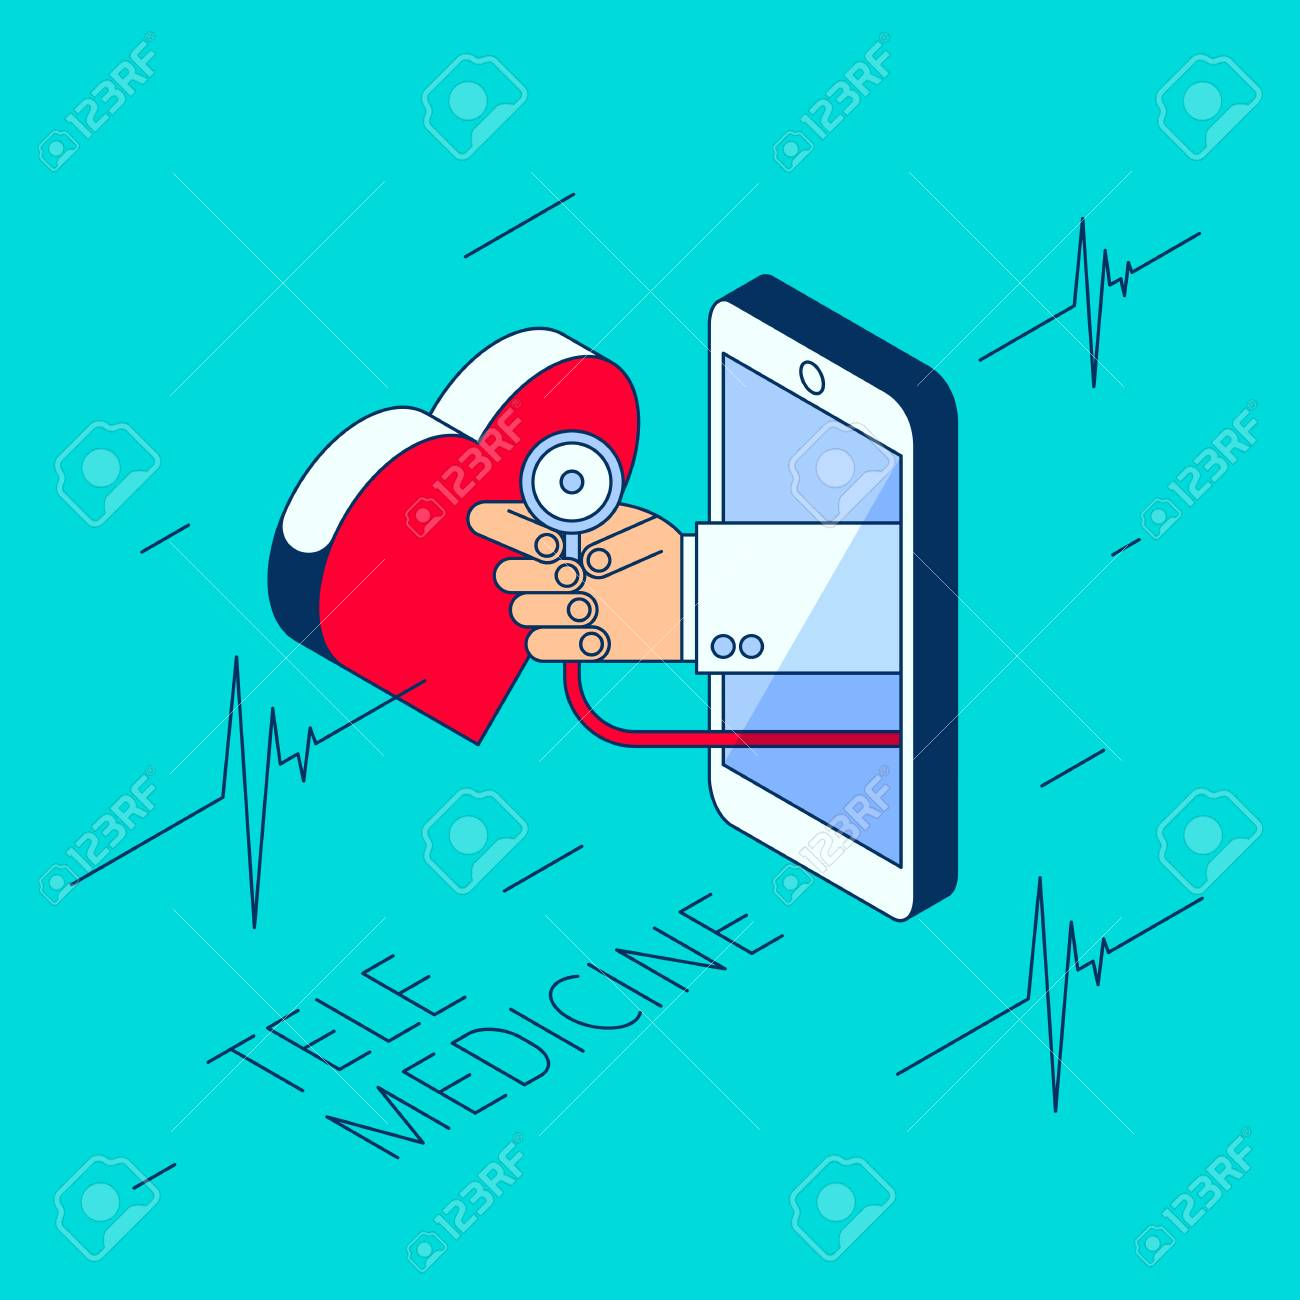 hight resolution of remote stethoscope concept diagram wiring diagram for you doctor s hand holding a stethoscope through the phone